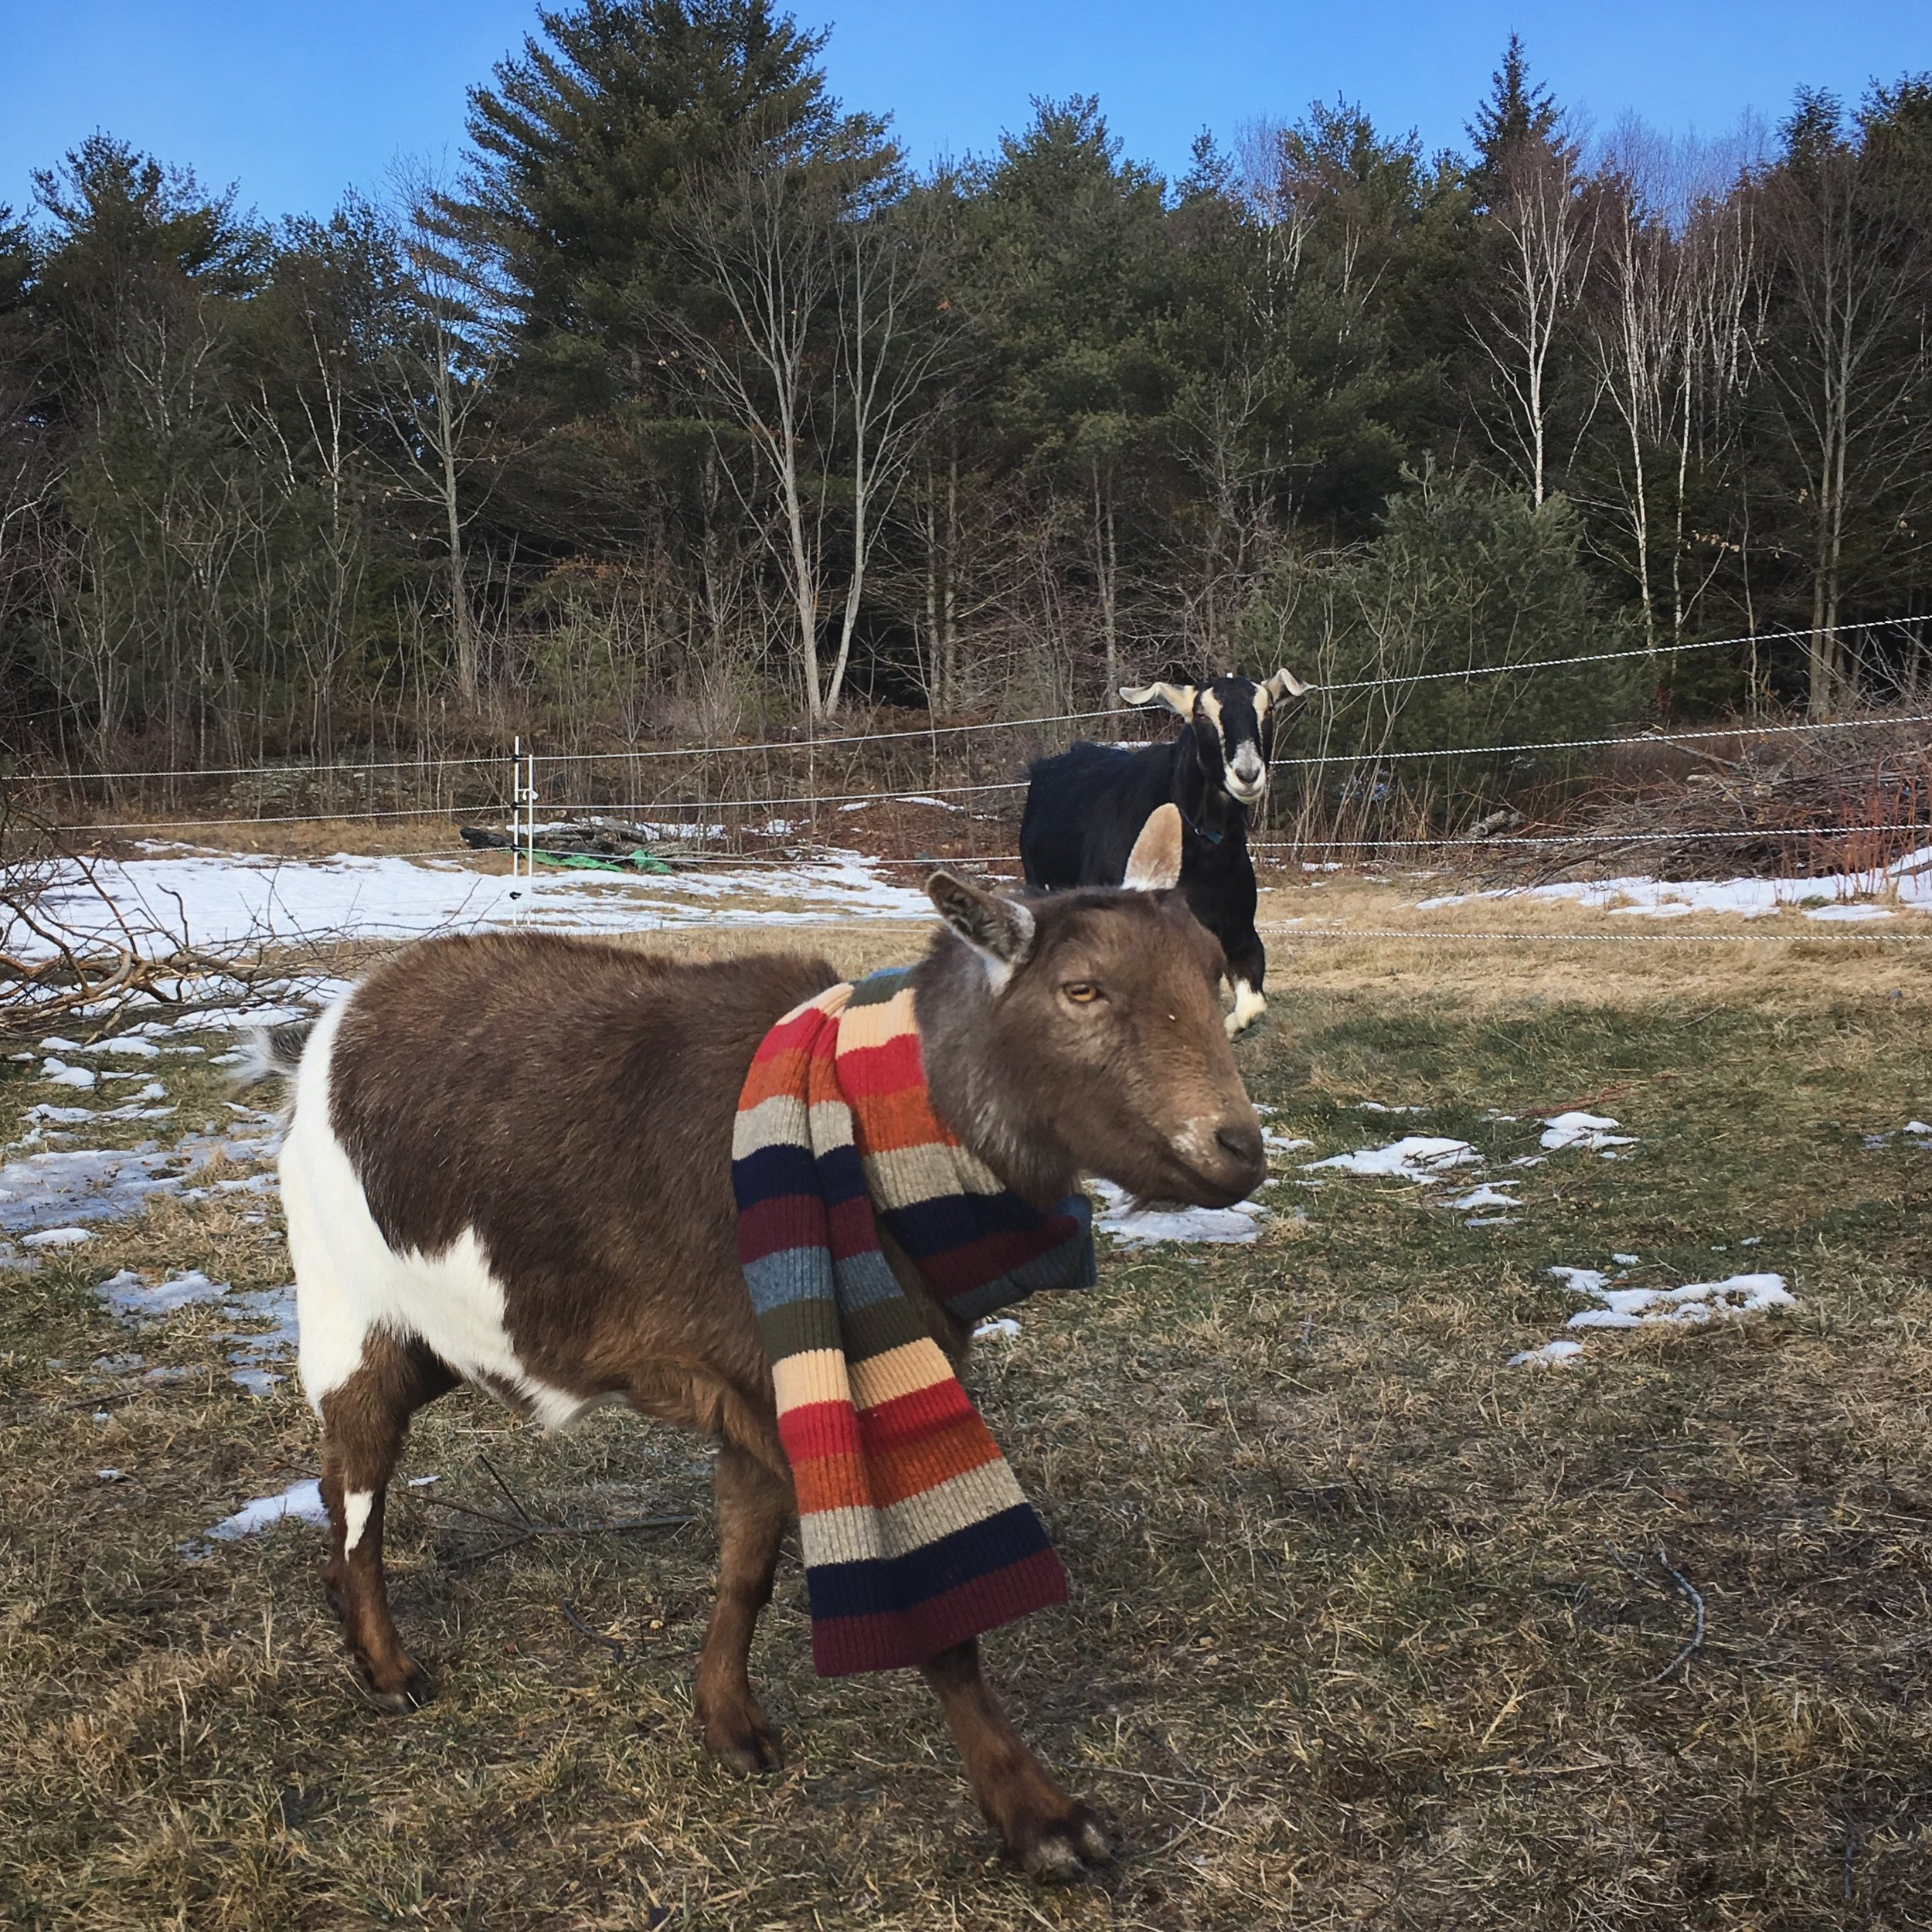 Wally practices an action shot. He's a goat on the go who still has time for fashion. Bella's getting jealous of the boys' fun.